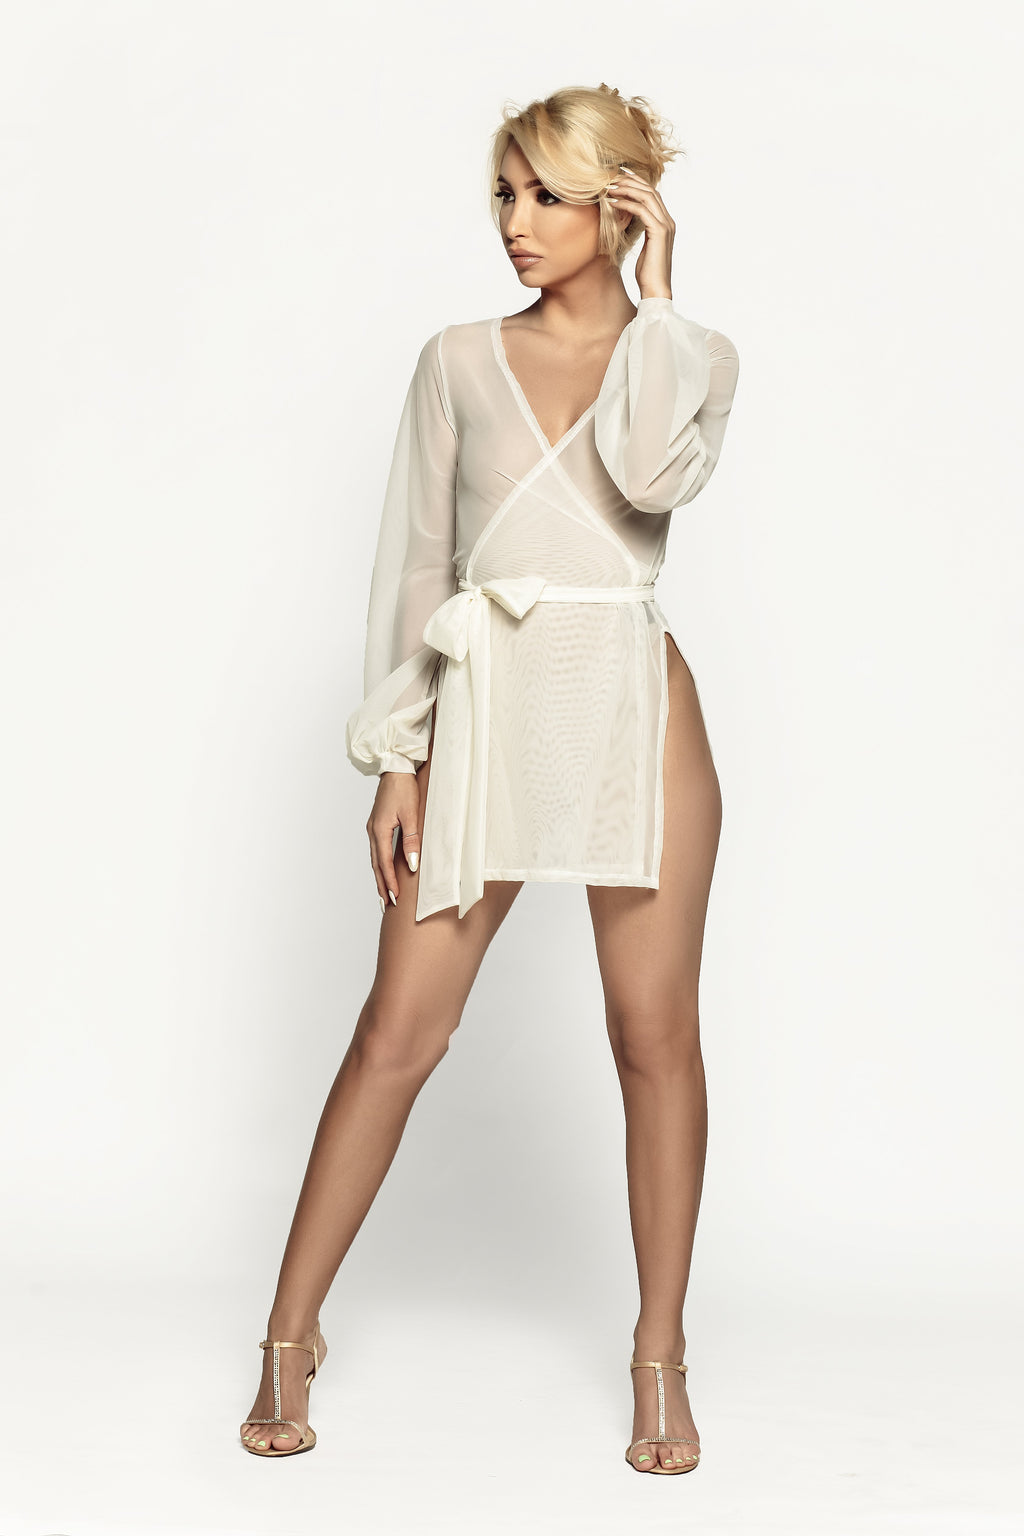 DAMITA MINI WRAP ROBE - Off- White